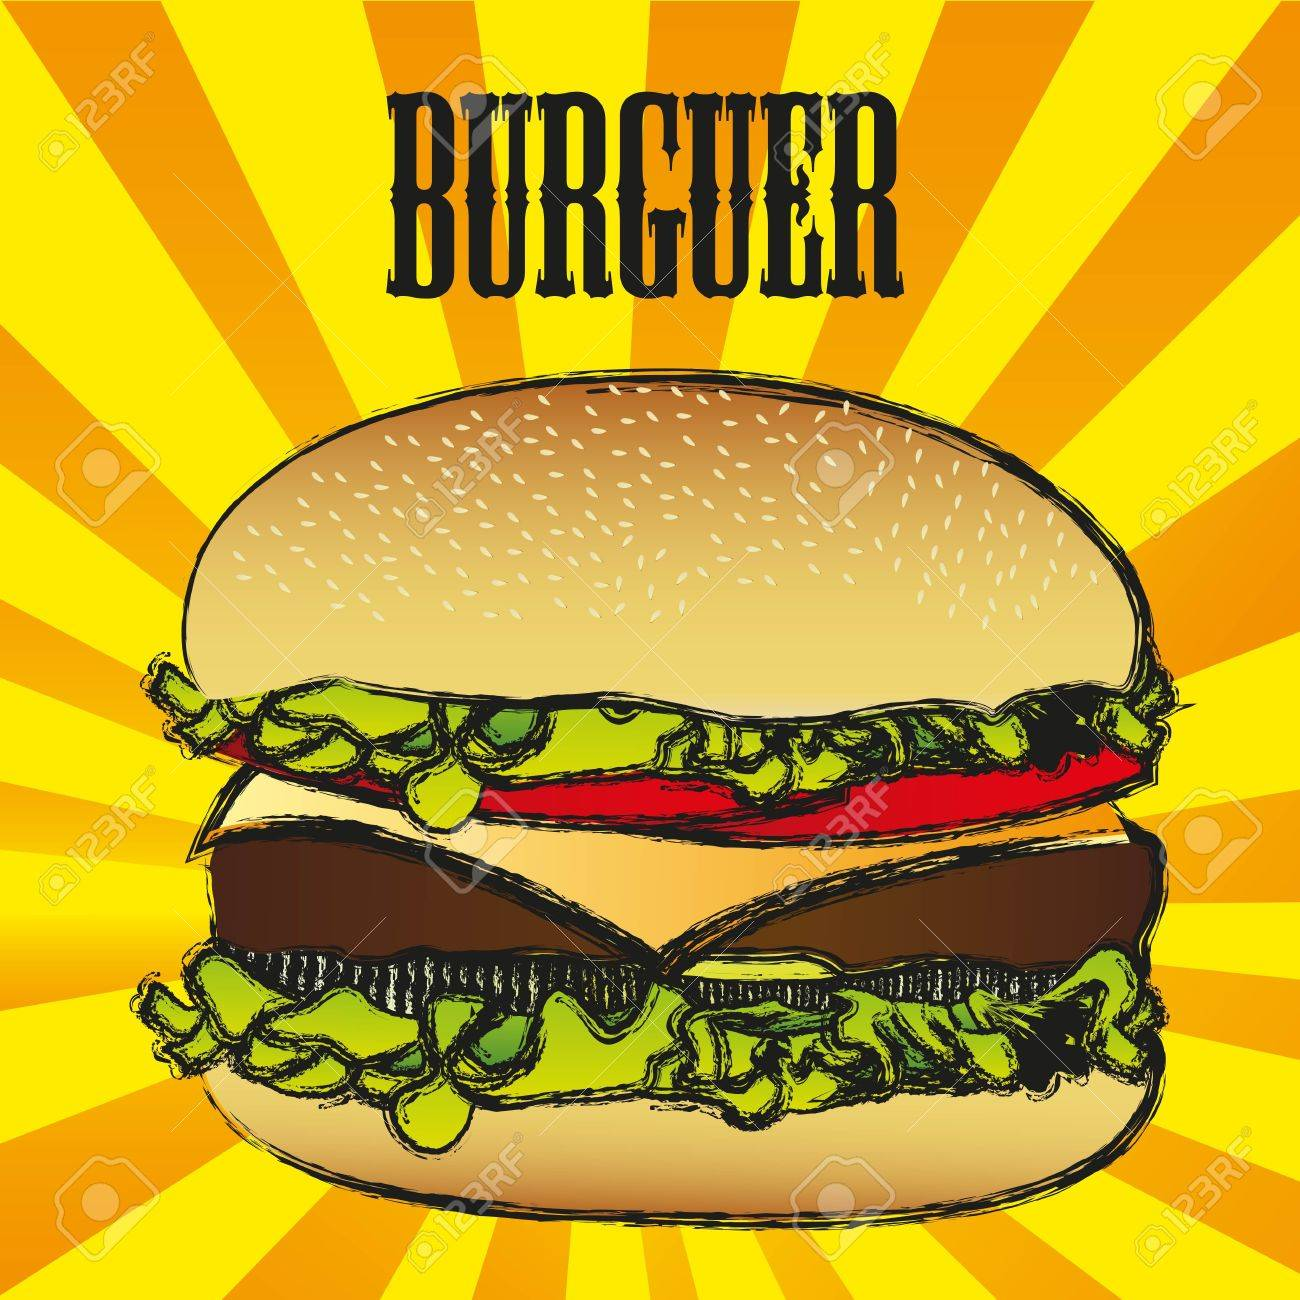 illustration of a hamburger with a grunge edge, on a background of lines - 13650665